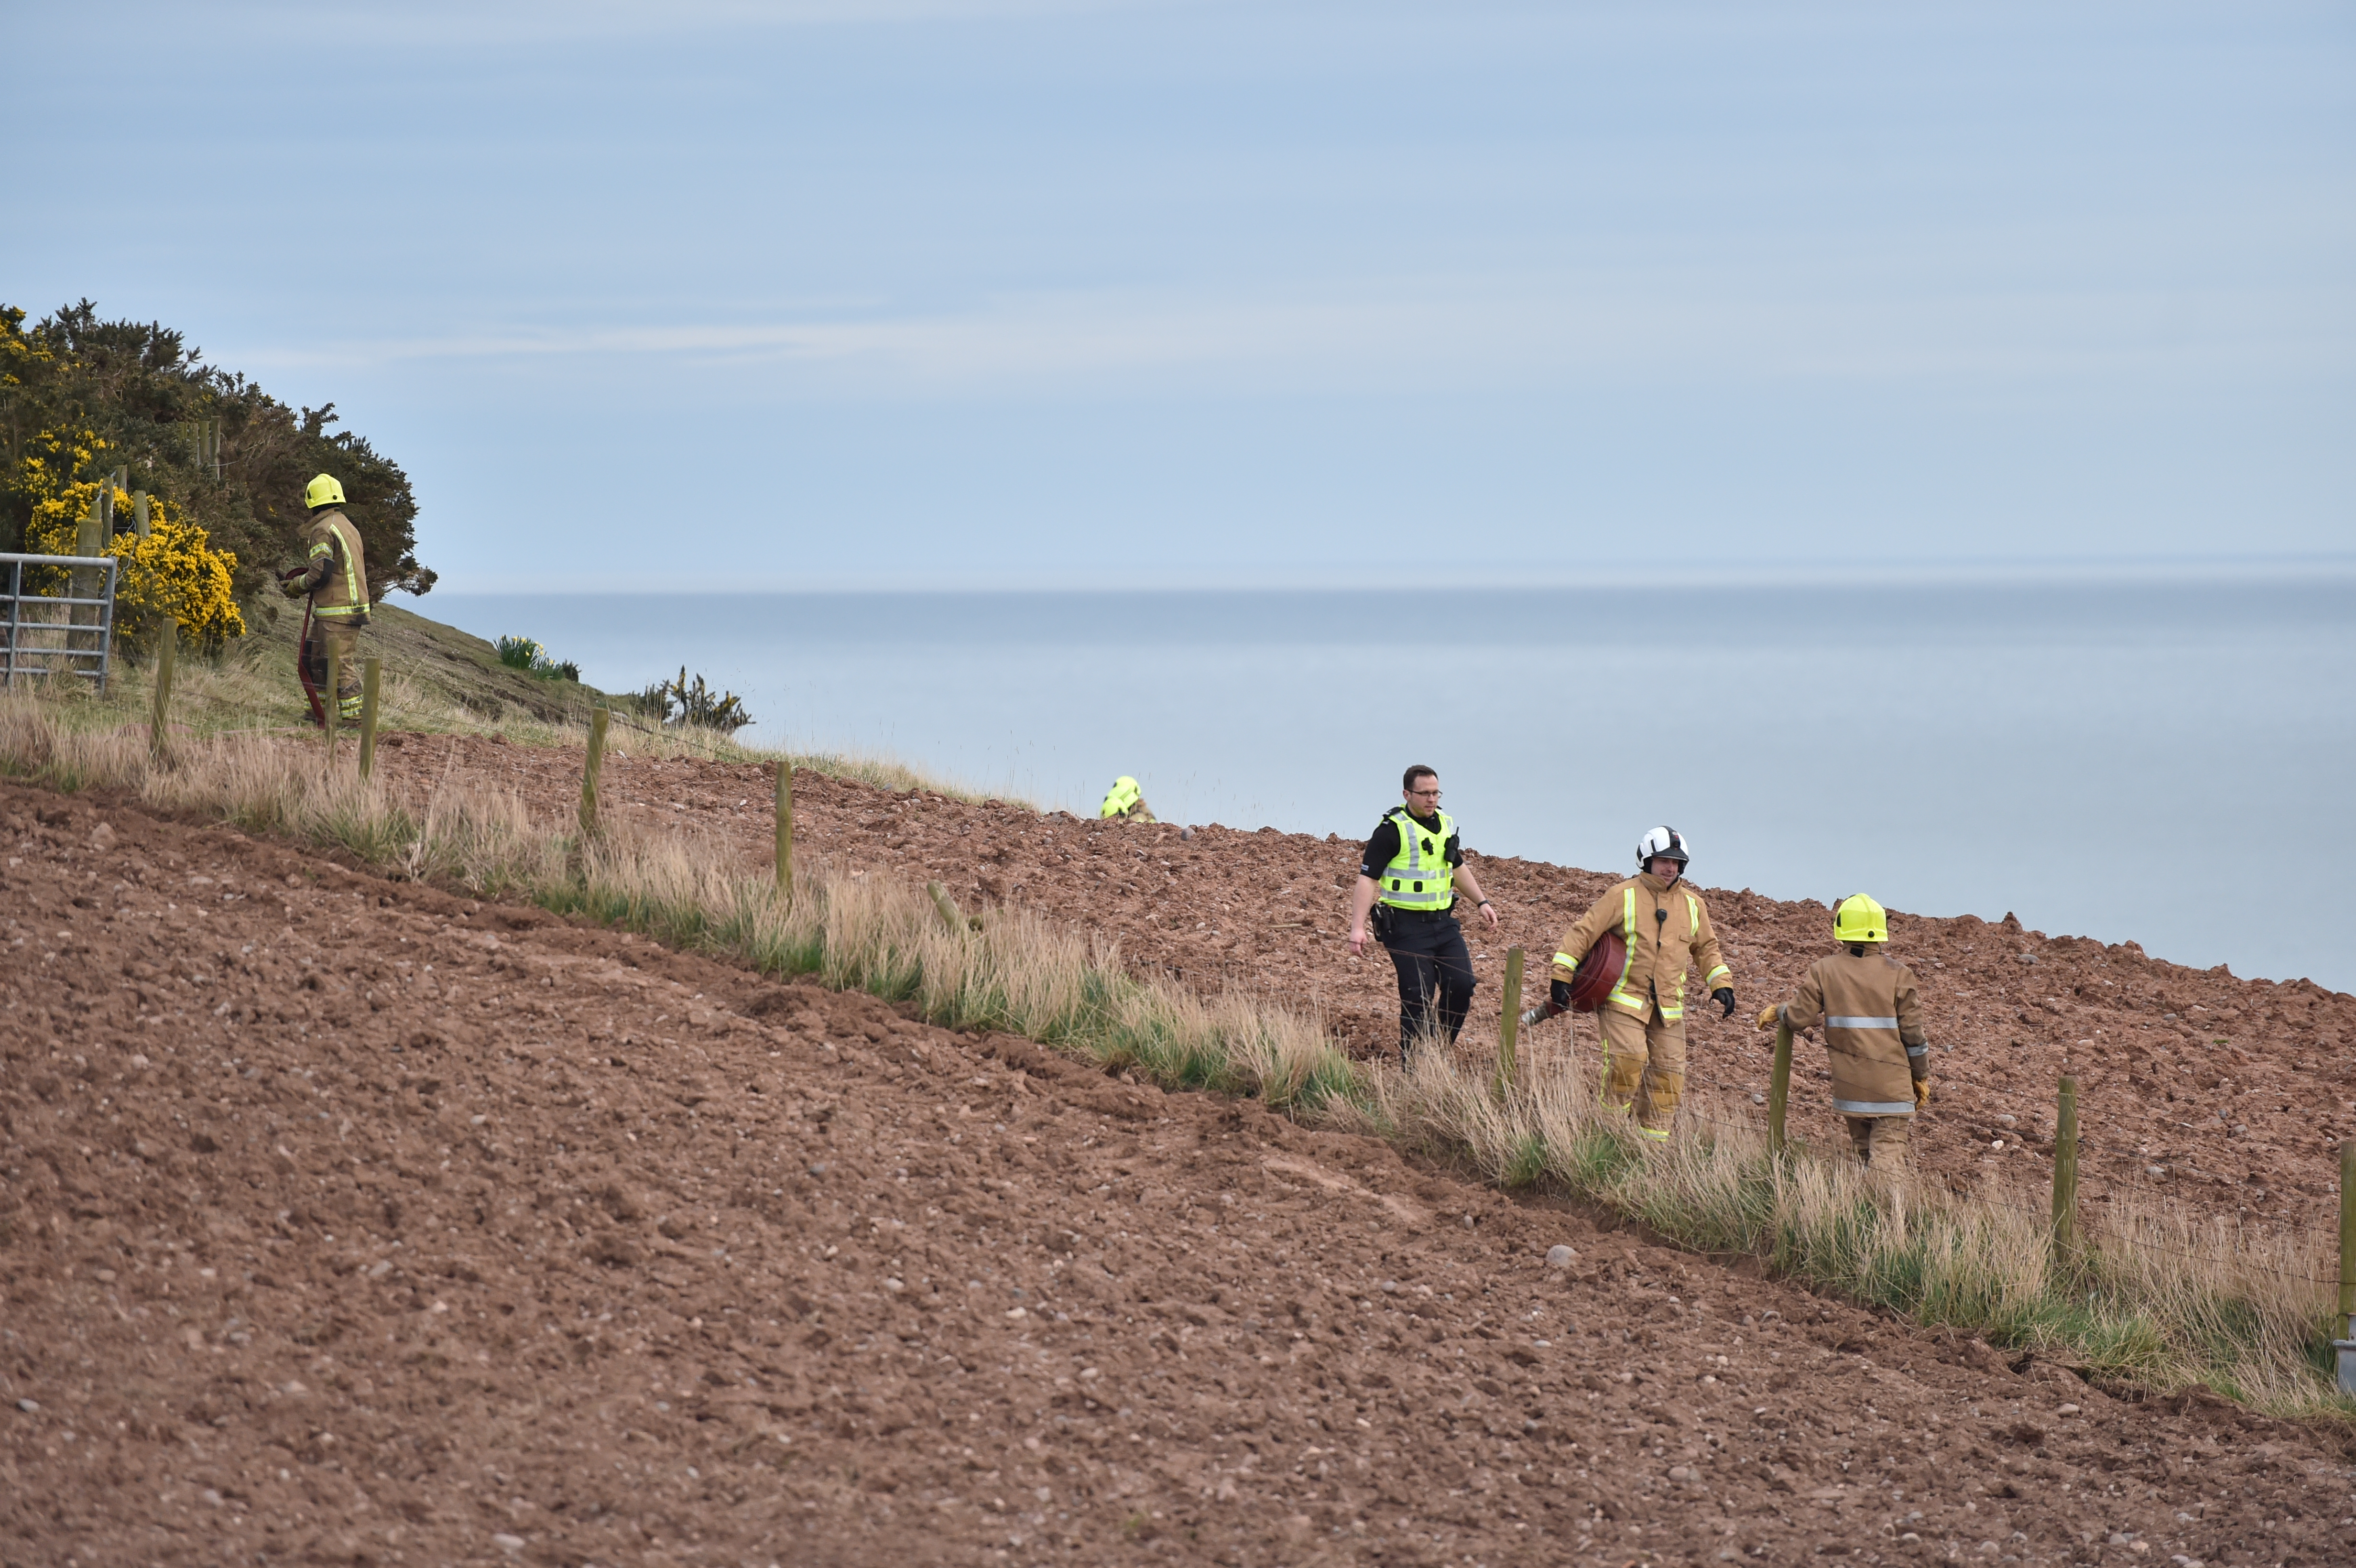 Reports of the incident were made at 3.48pm, at the Stonehaven war memorial, near Dunnottar Castle